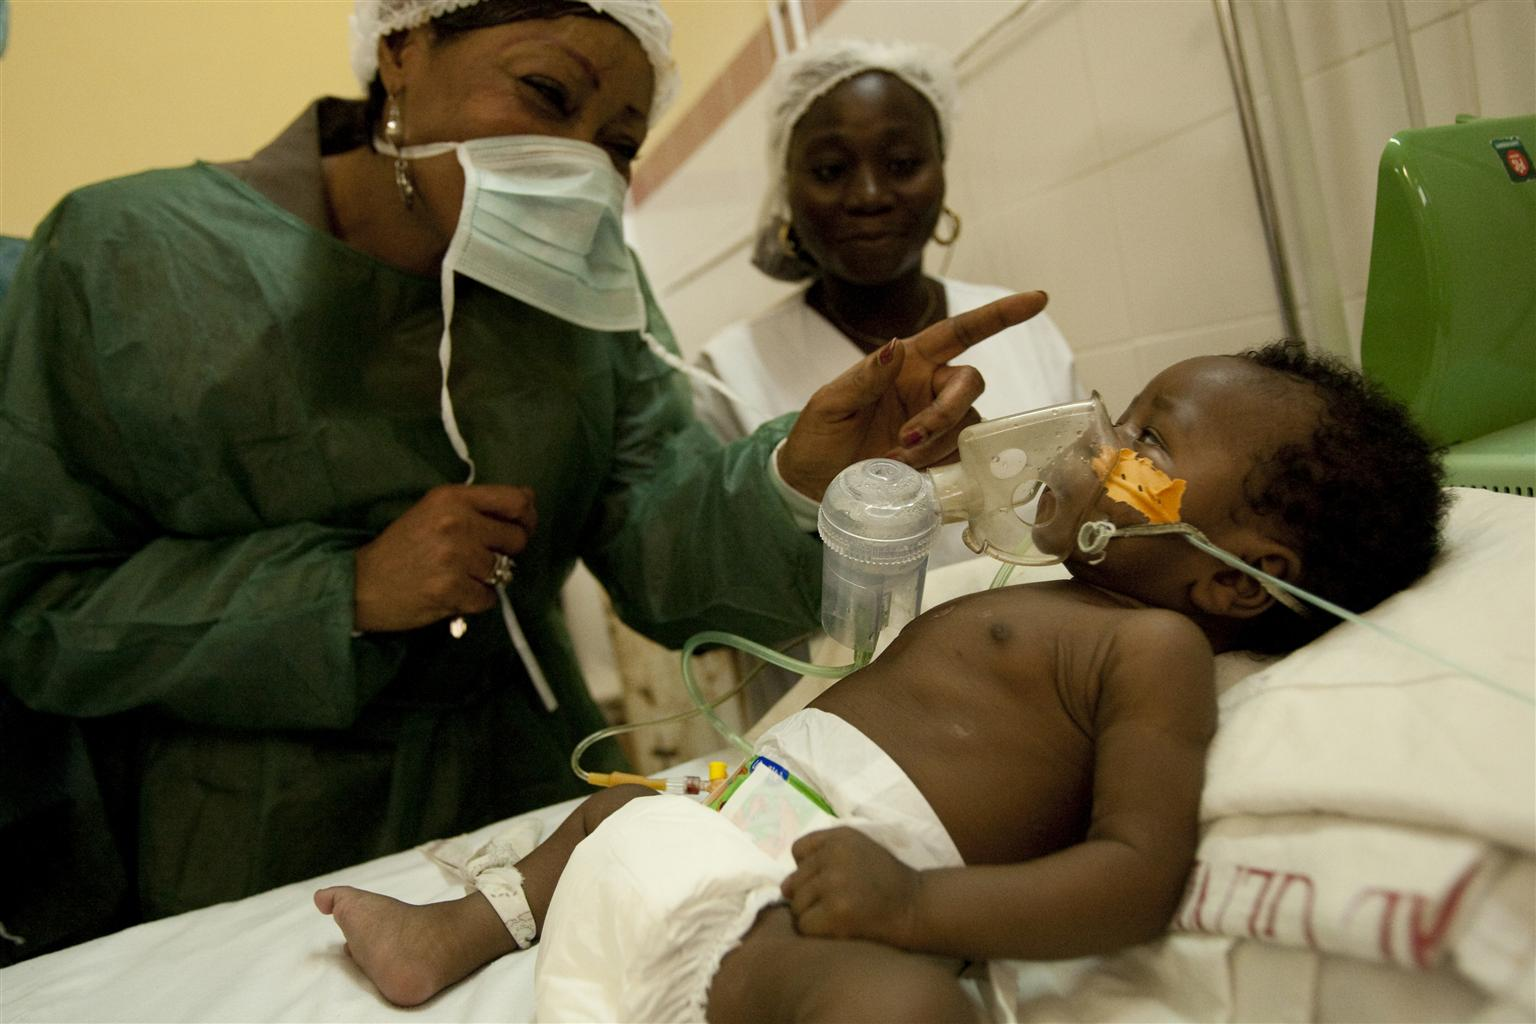 Hospital Director Sidonie Kinzonzi greets a baby wearing a respiration mask at the A. Cisse Hospital in the coastal city of Pointe-Noire, the epicentre of the country's polio epidemic. The baby does not have polio.